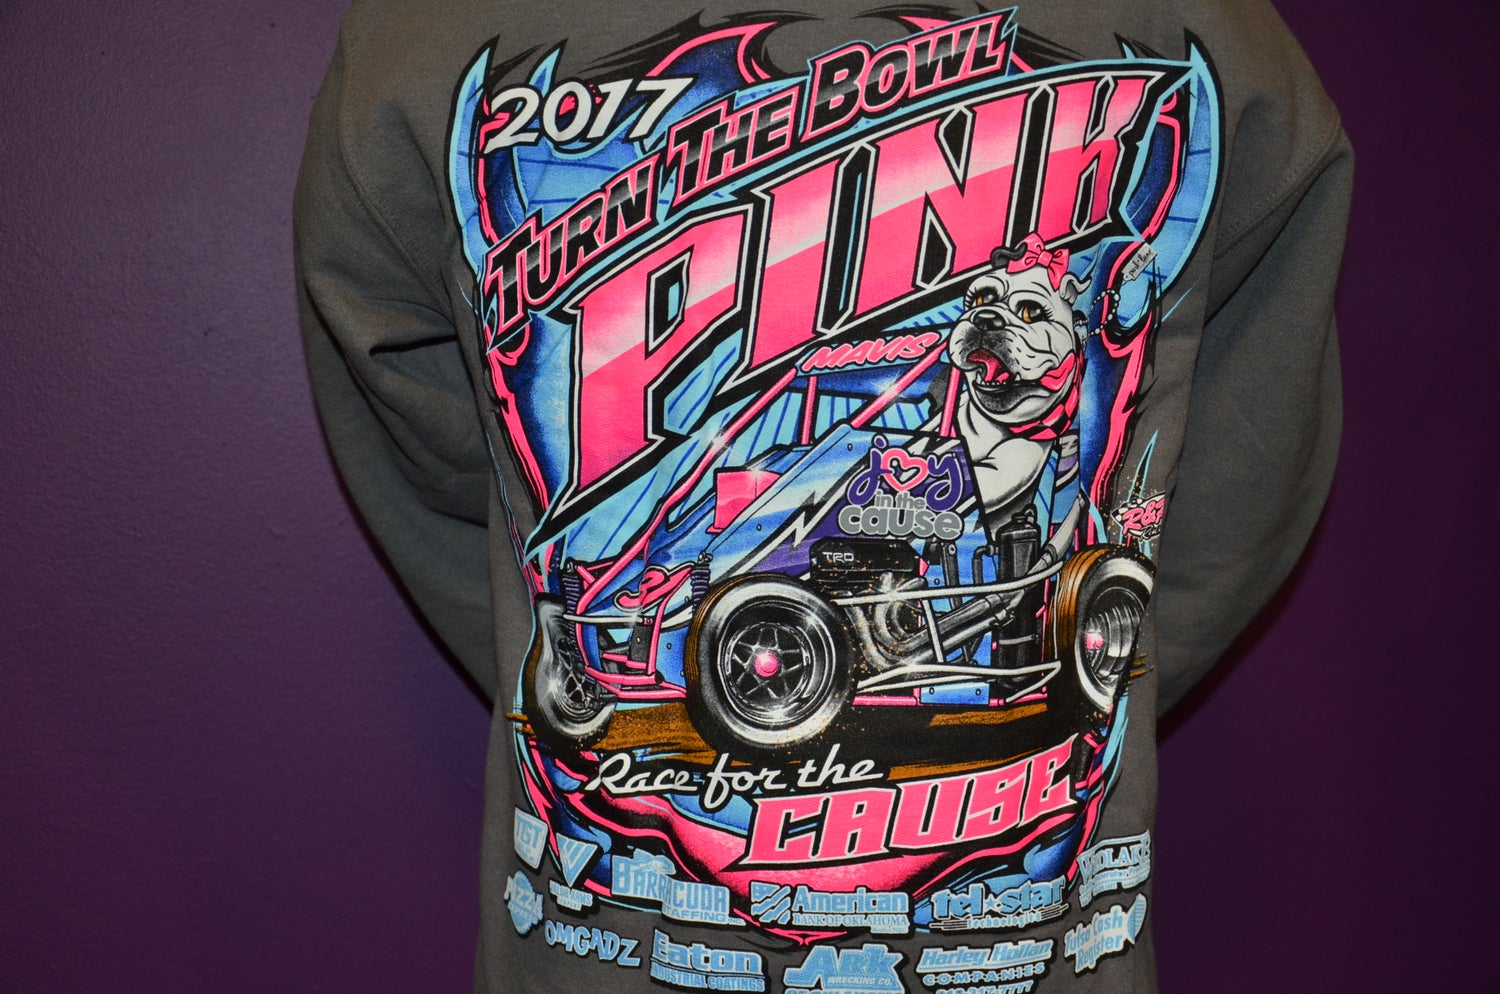 Image of VINTAGE: 2017 Chili Bowl Sweatshirt